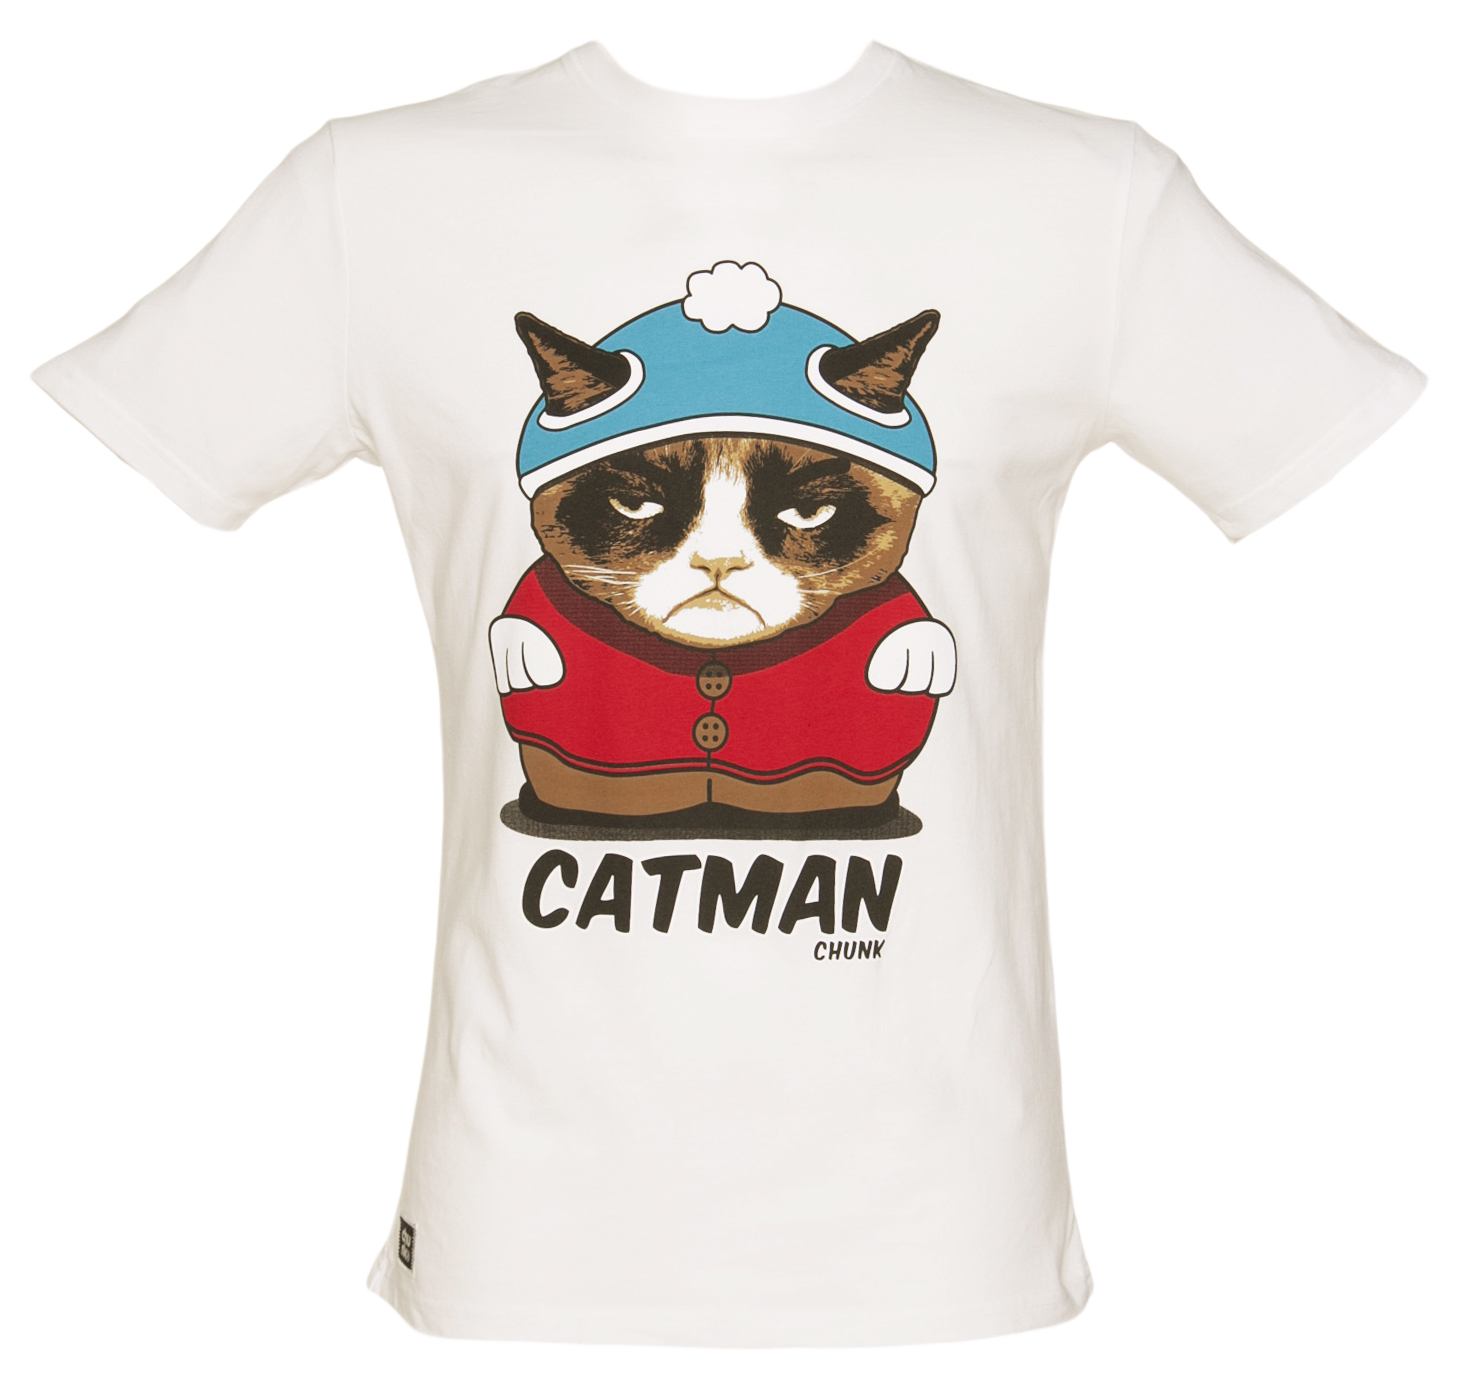 Mens White Catman TShirt from Chunk